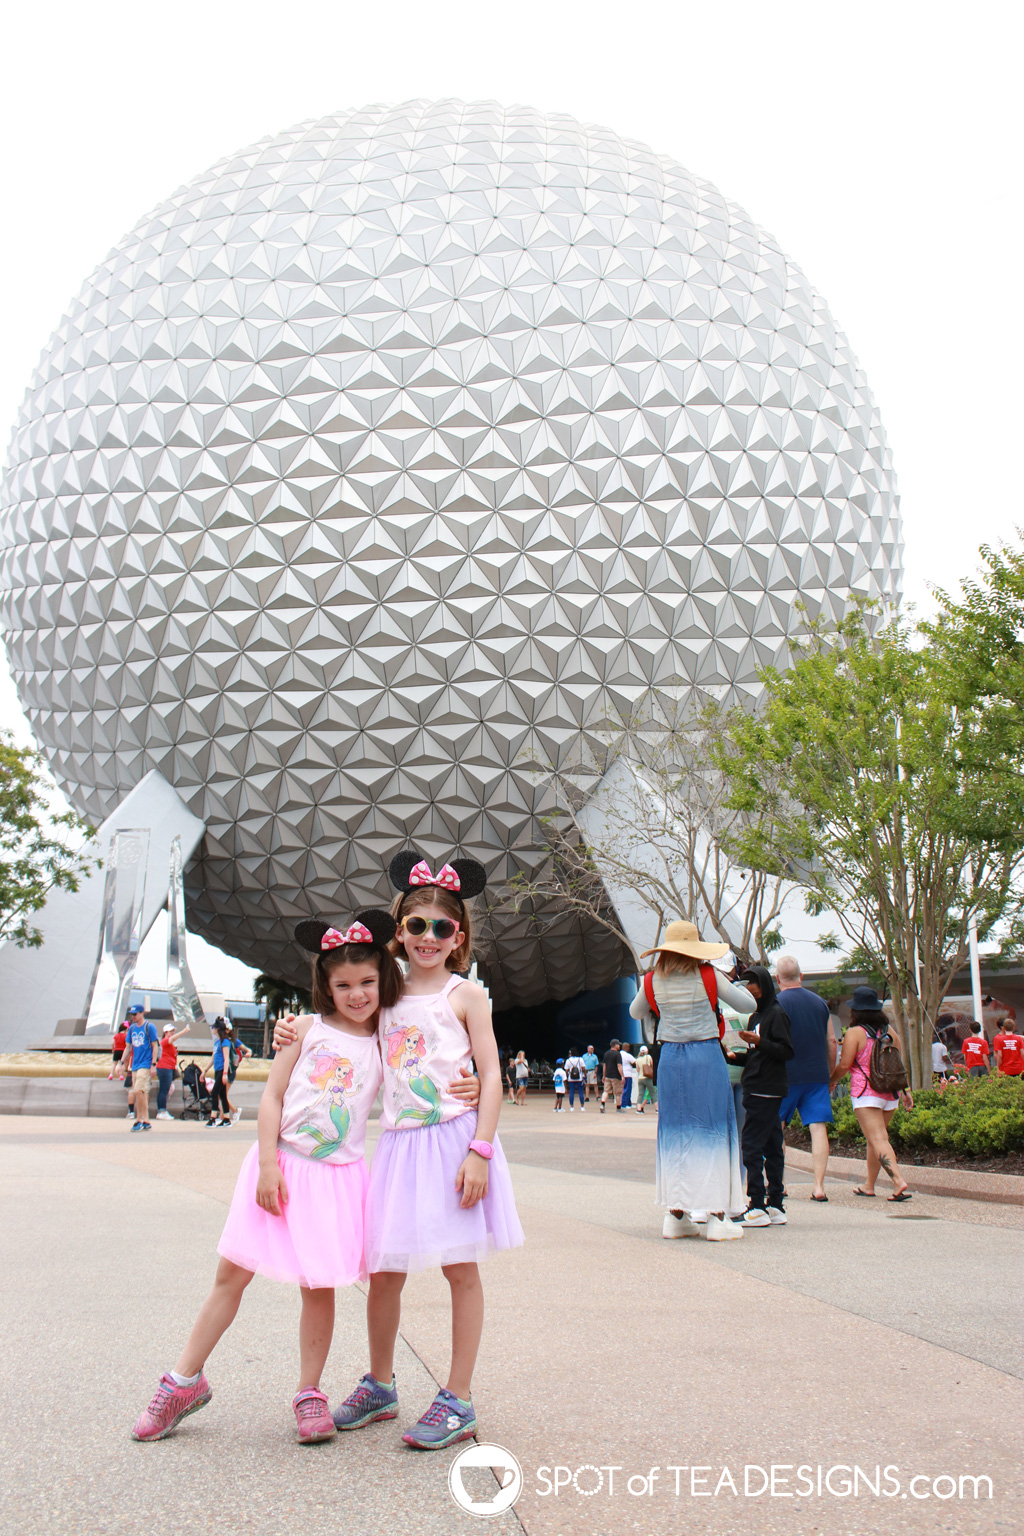 Our Disney World Vacation Budget - for a family of 4 plus grandparents in June 2021 | spotofteadesigns.com